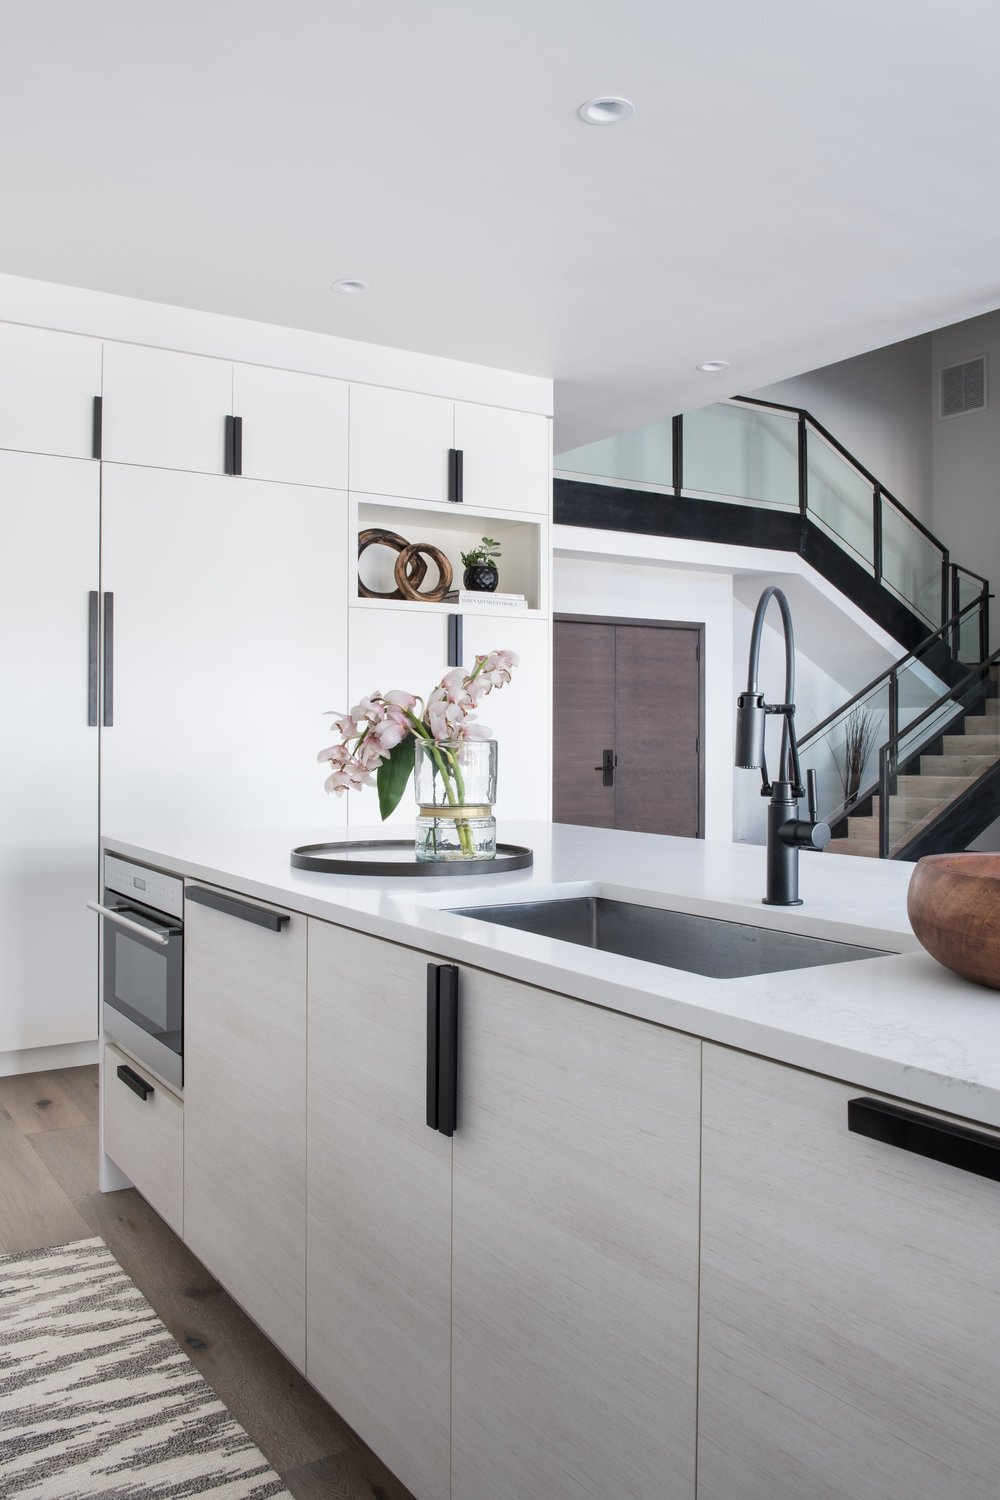 Stylish kitchen with faucet and flower vase